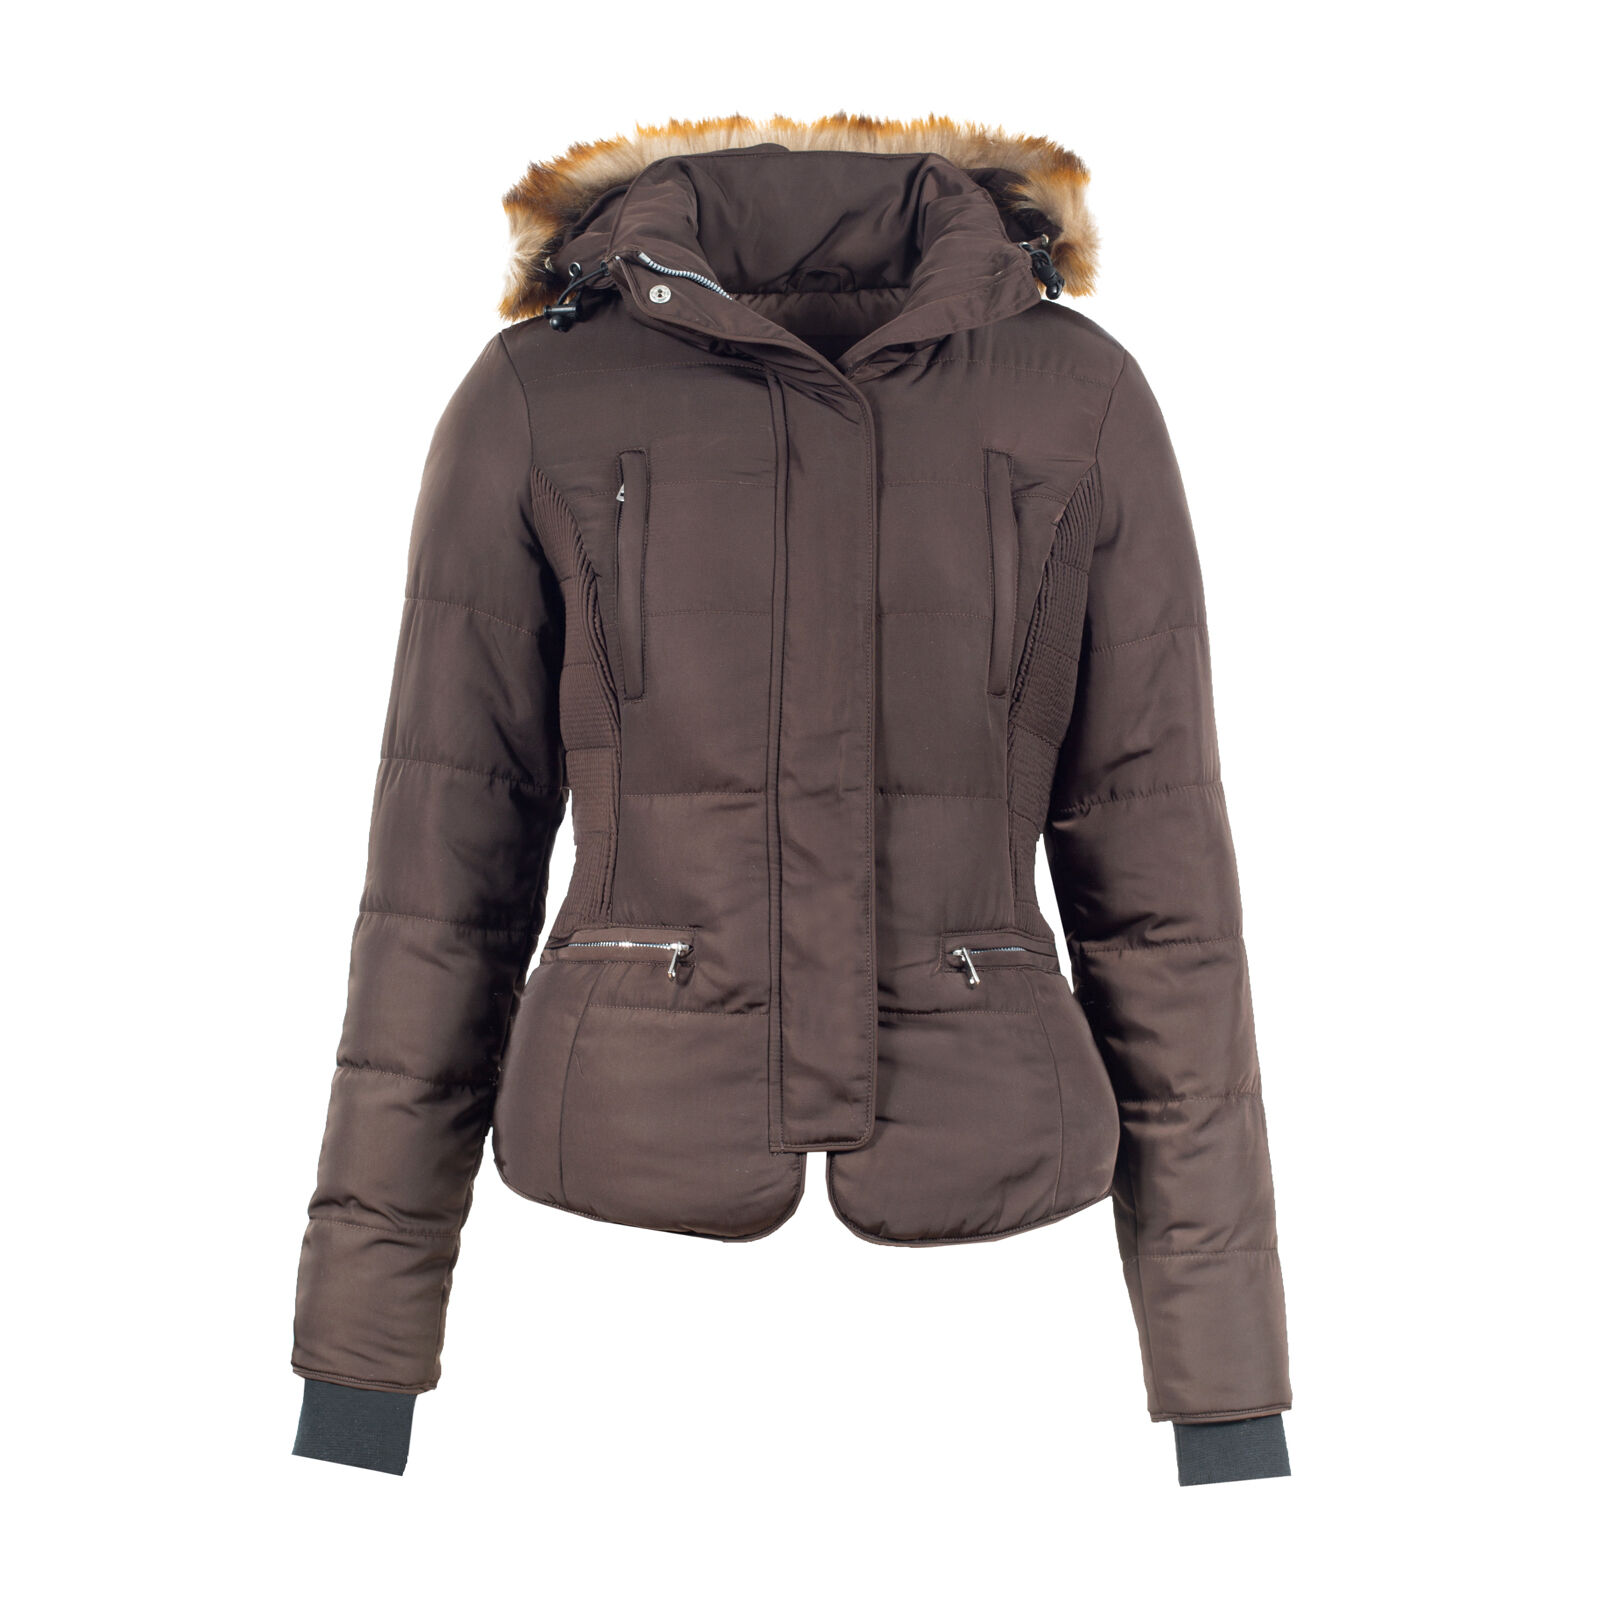 Spooks jacke winter